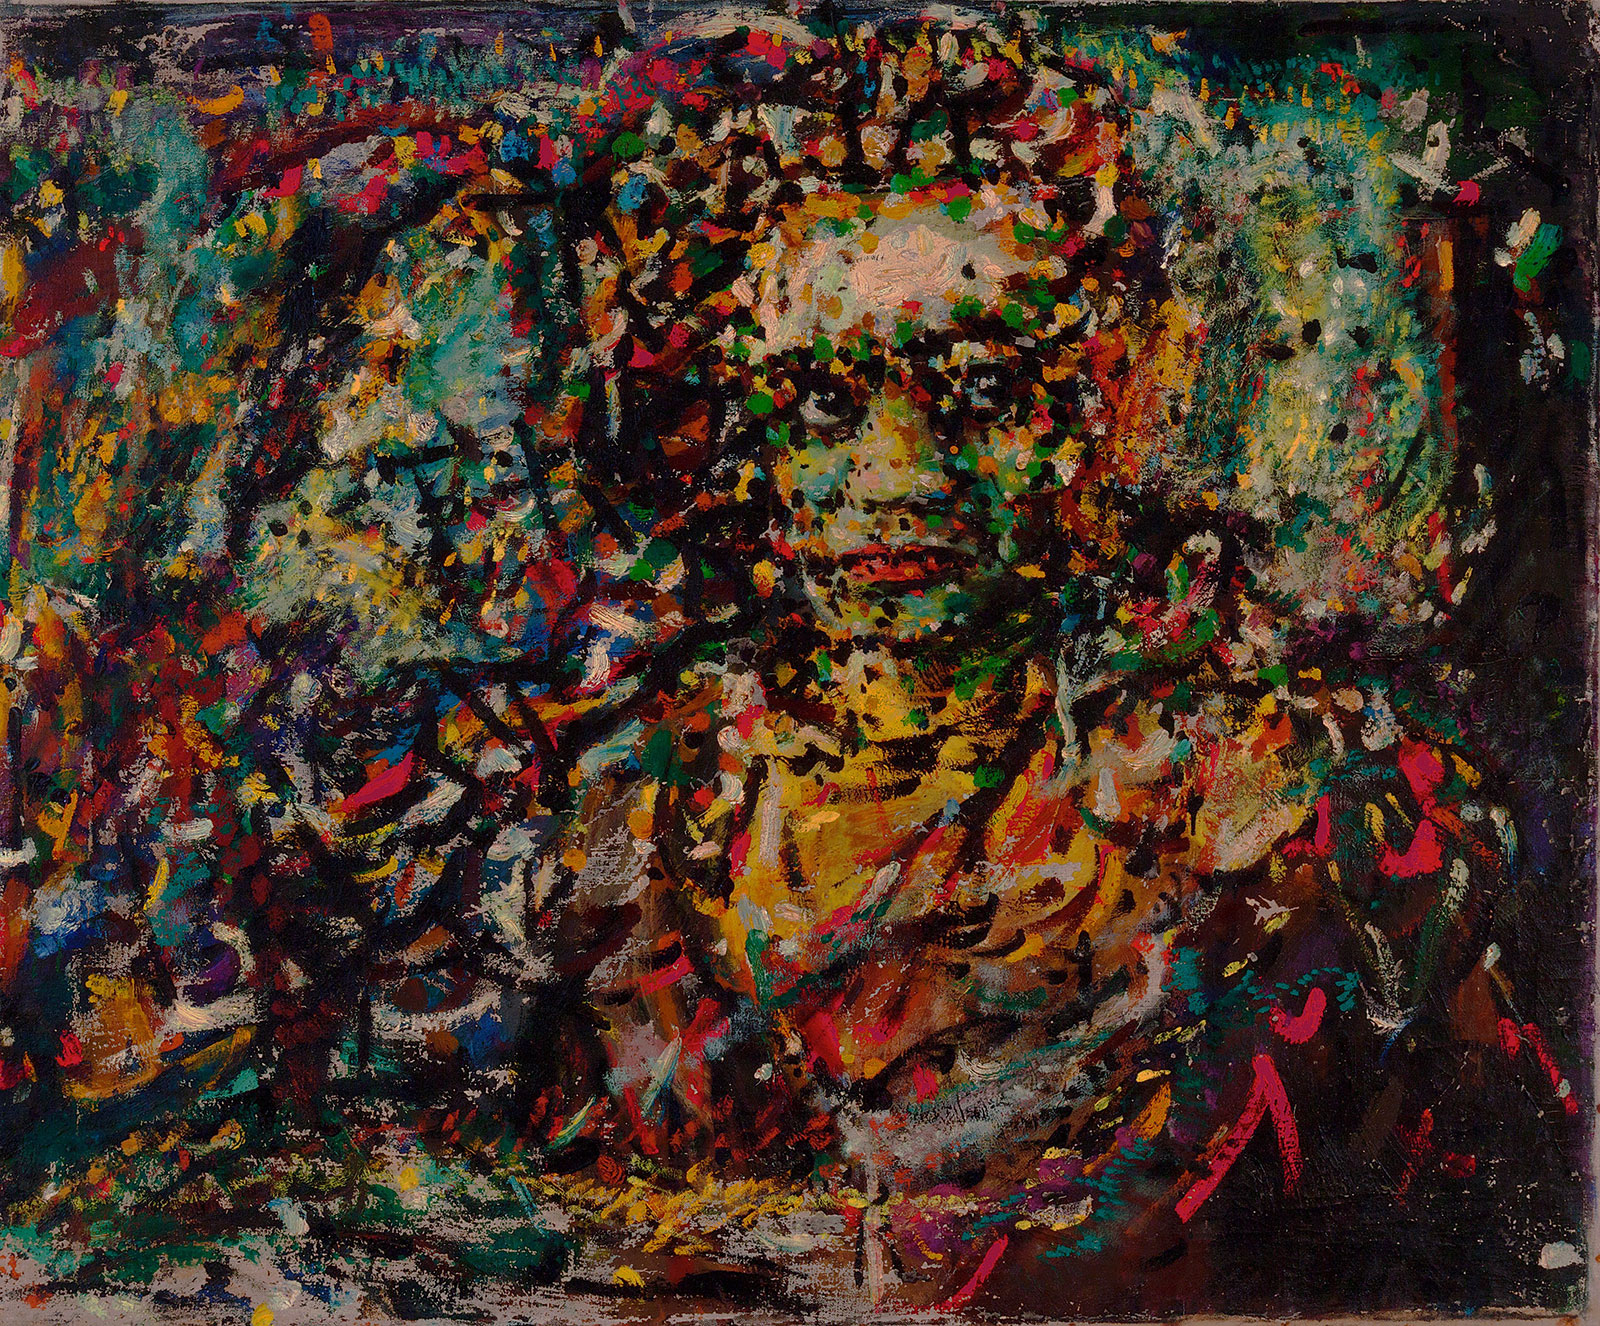 Fritz Ascher Society - Rediscovering Surpressed Artists